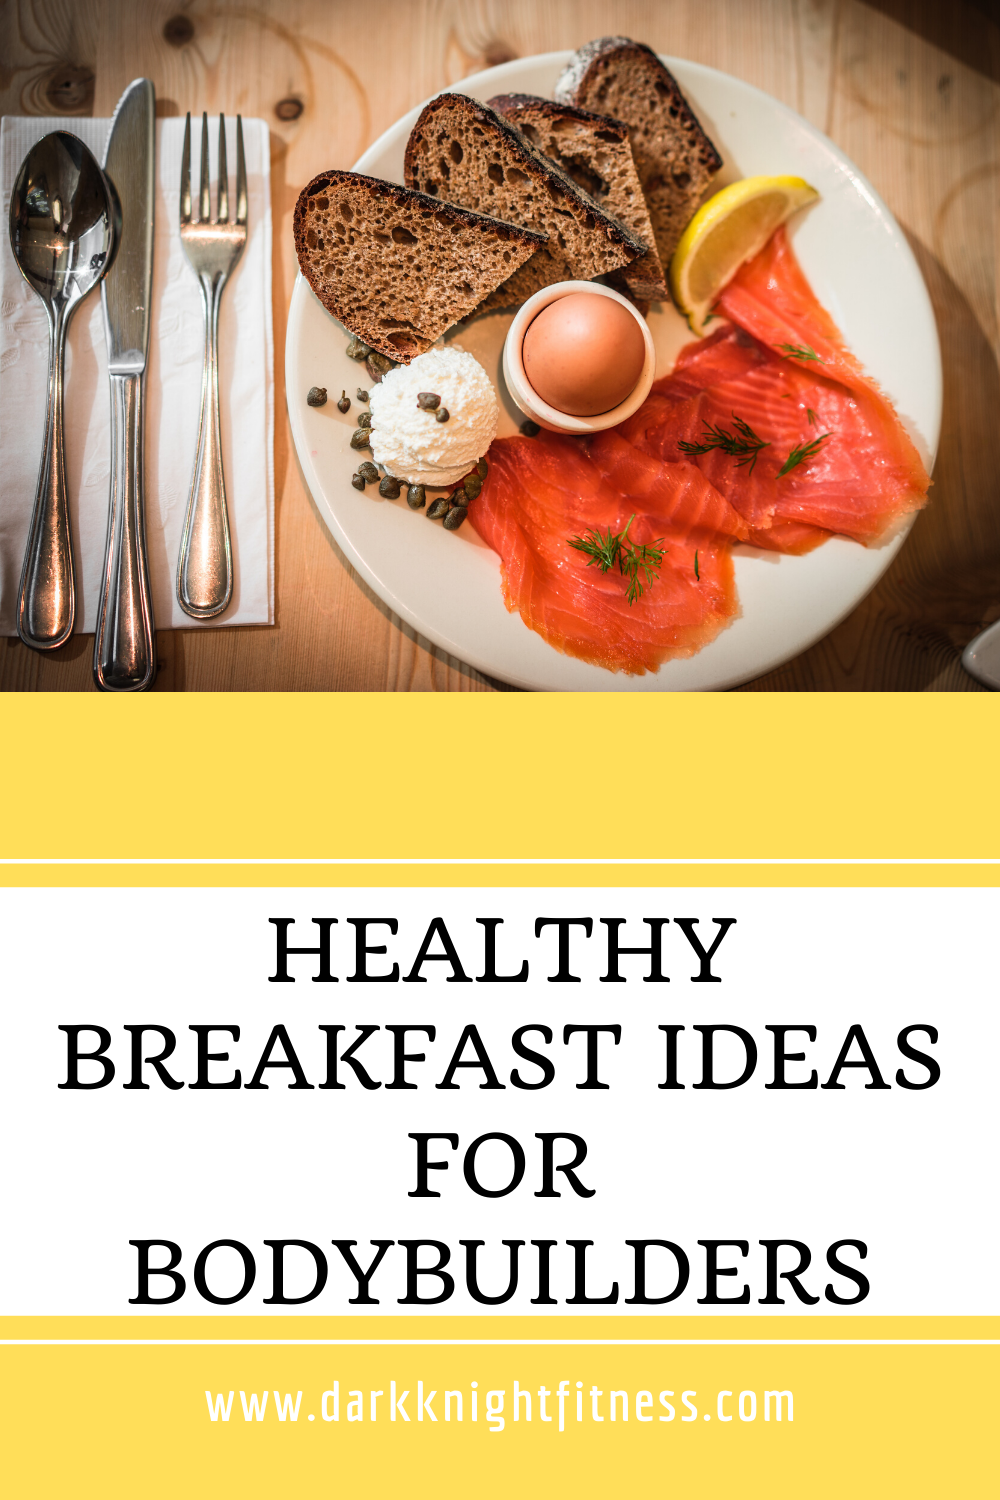 Breakfast is the first meal of the day. It should be healthy. Learn the amazing and healthy breakfast ideas for bodybuilders. #breakfast#bodybuilder#healthy#fitness